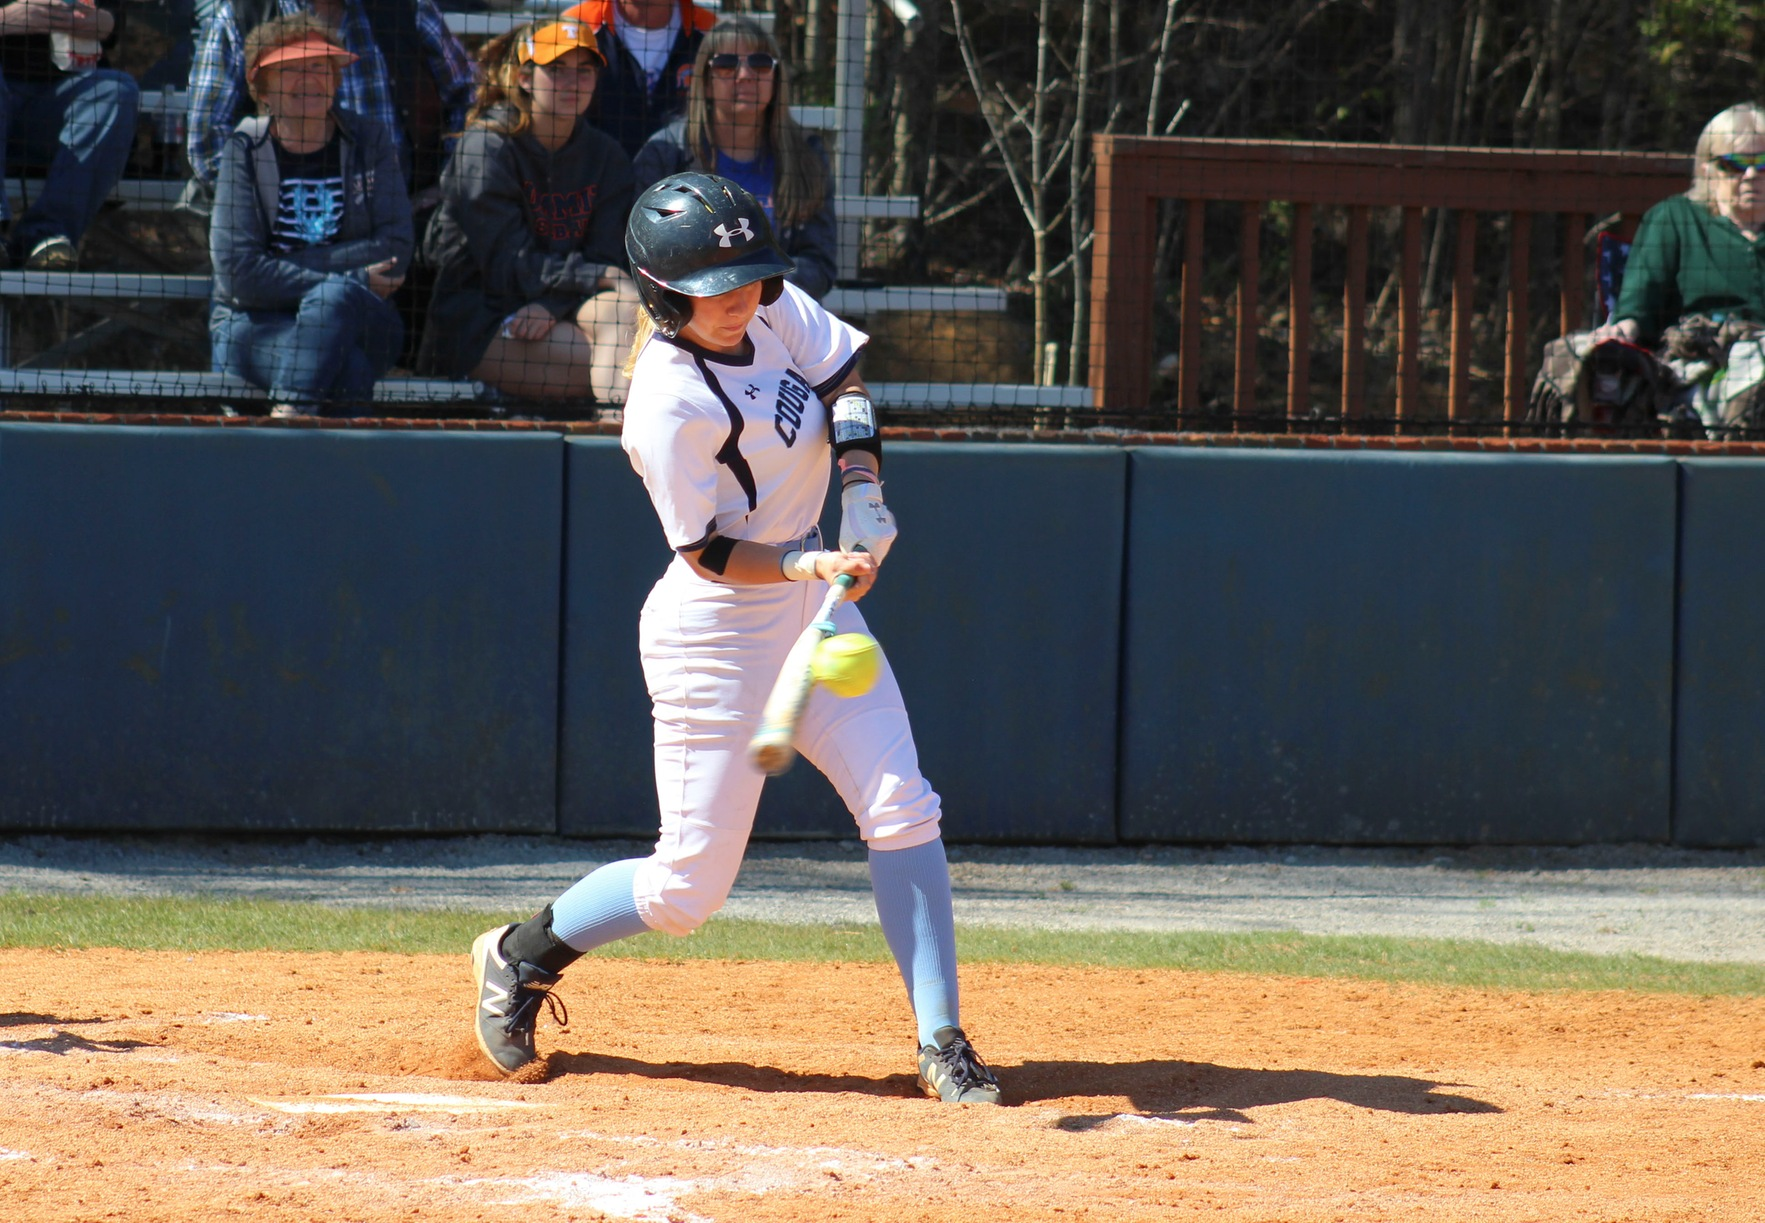 PREVIEW: Softball Faces WSCC Again